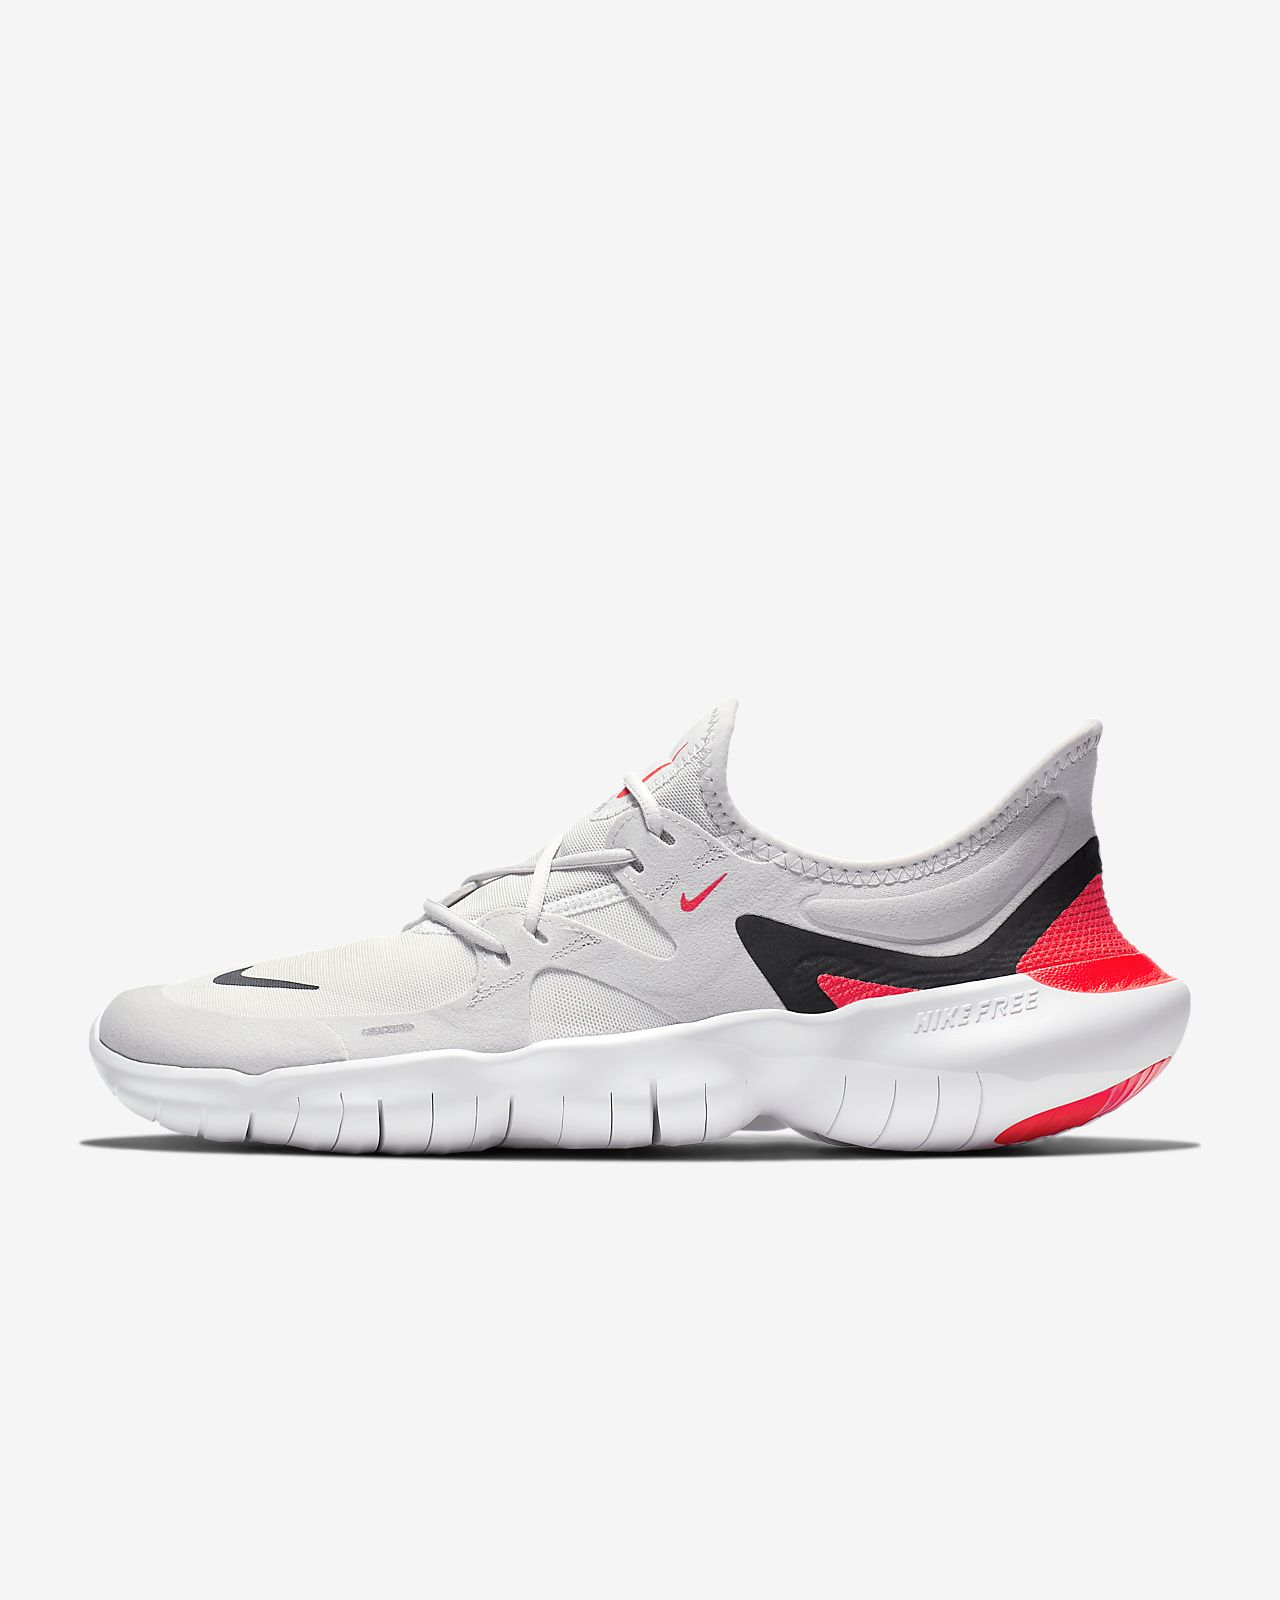 buy online 500a9 79dc0 Men s Running Shoe. Nike Free RN 5.0